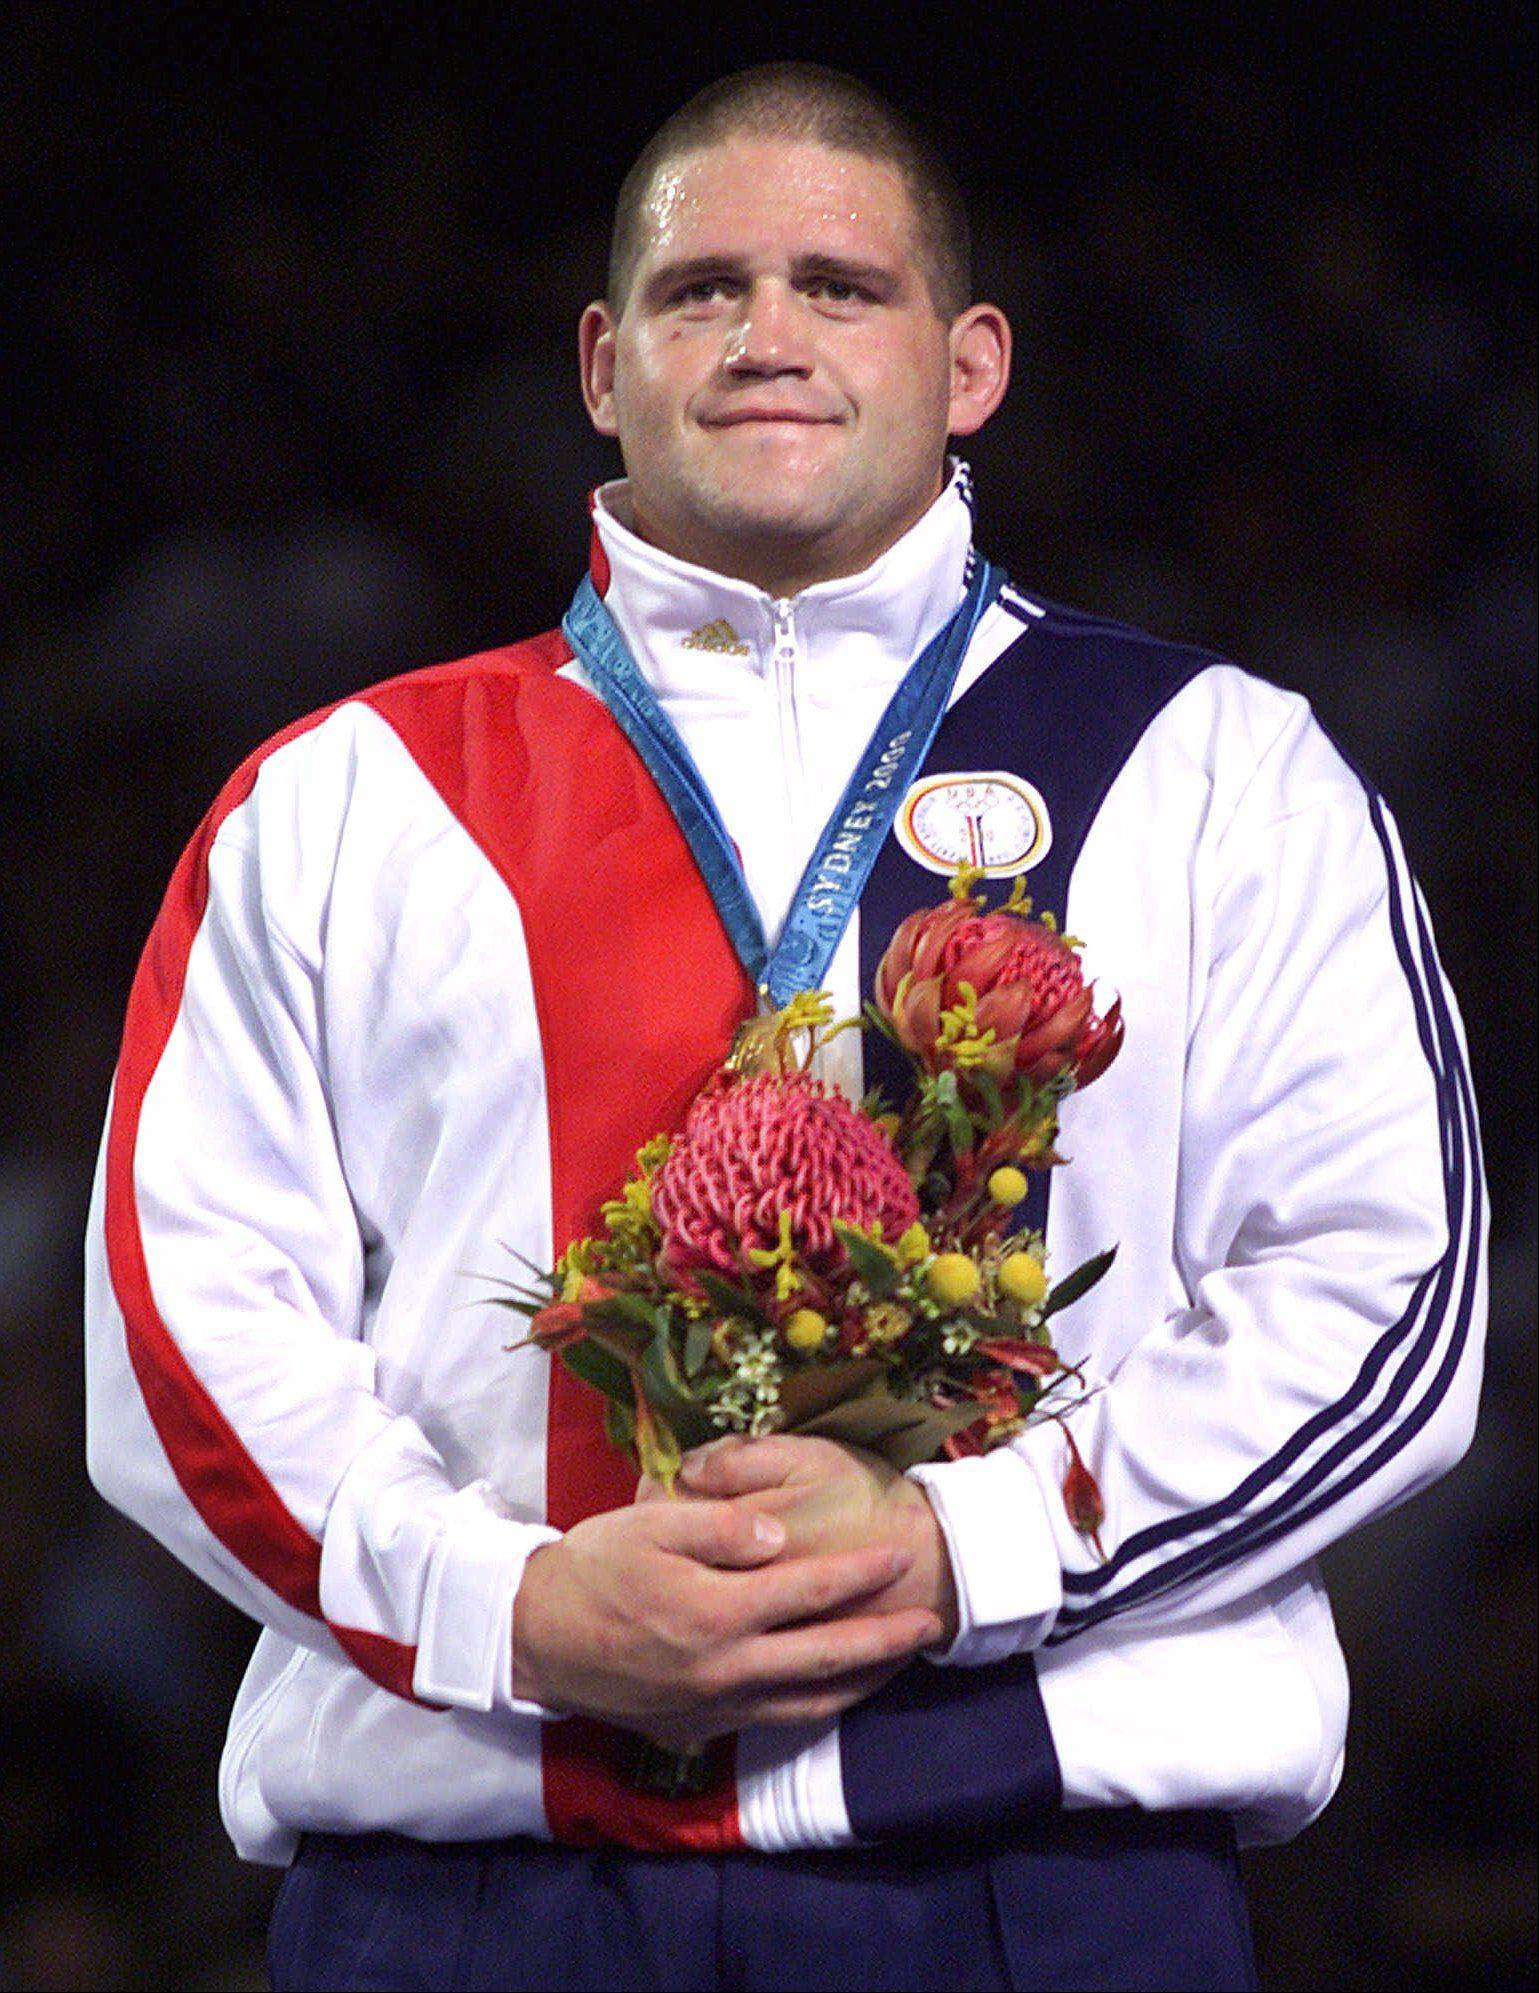 "USA's Rulon Gardner smiles from the top of the medal stand after defeating Russia's Alexandre Kareline in the 130 kg Greco-Roman wrestling final at the Sydney Olympic Games, Wednesday, Sept. 27, 2000. Gardner, is the talk of his hometown and state of Afton, Wyo. ""It's a great big deal because we're such a small community,"" said Gloria Putnam, owner of Country Charm Beauty Salon. The unheralded Gardner won against Karelin, unbeaten in 13 years and a three-time defending gold medalist."